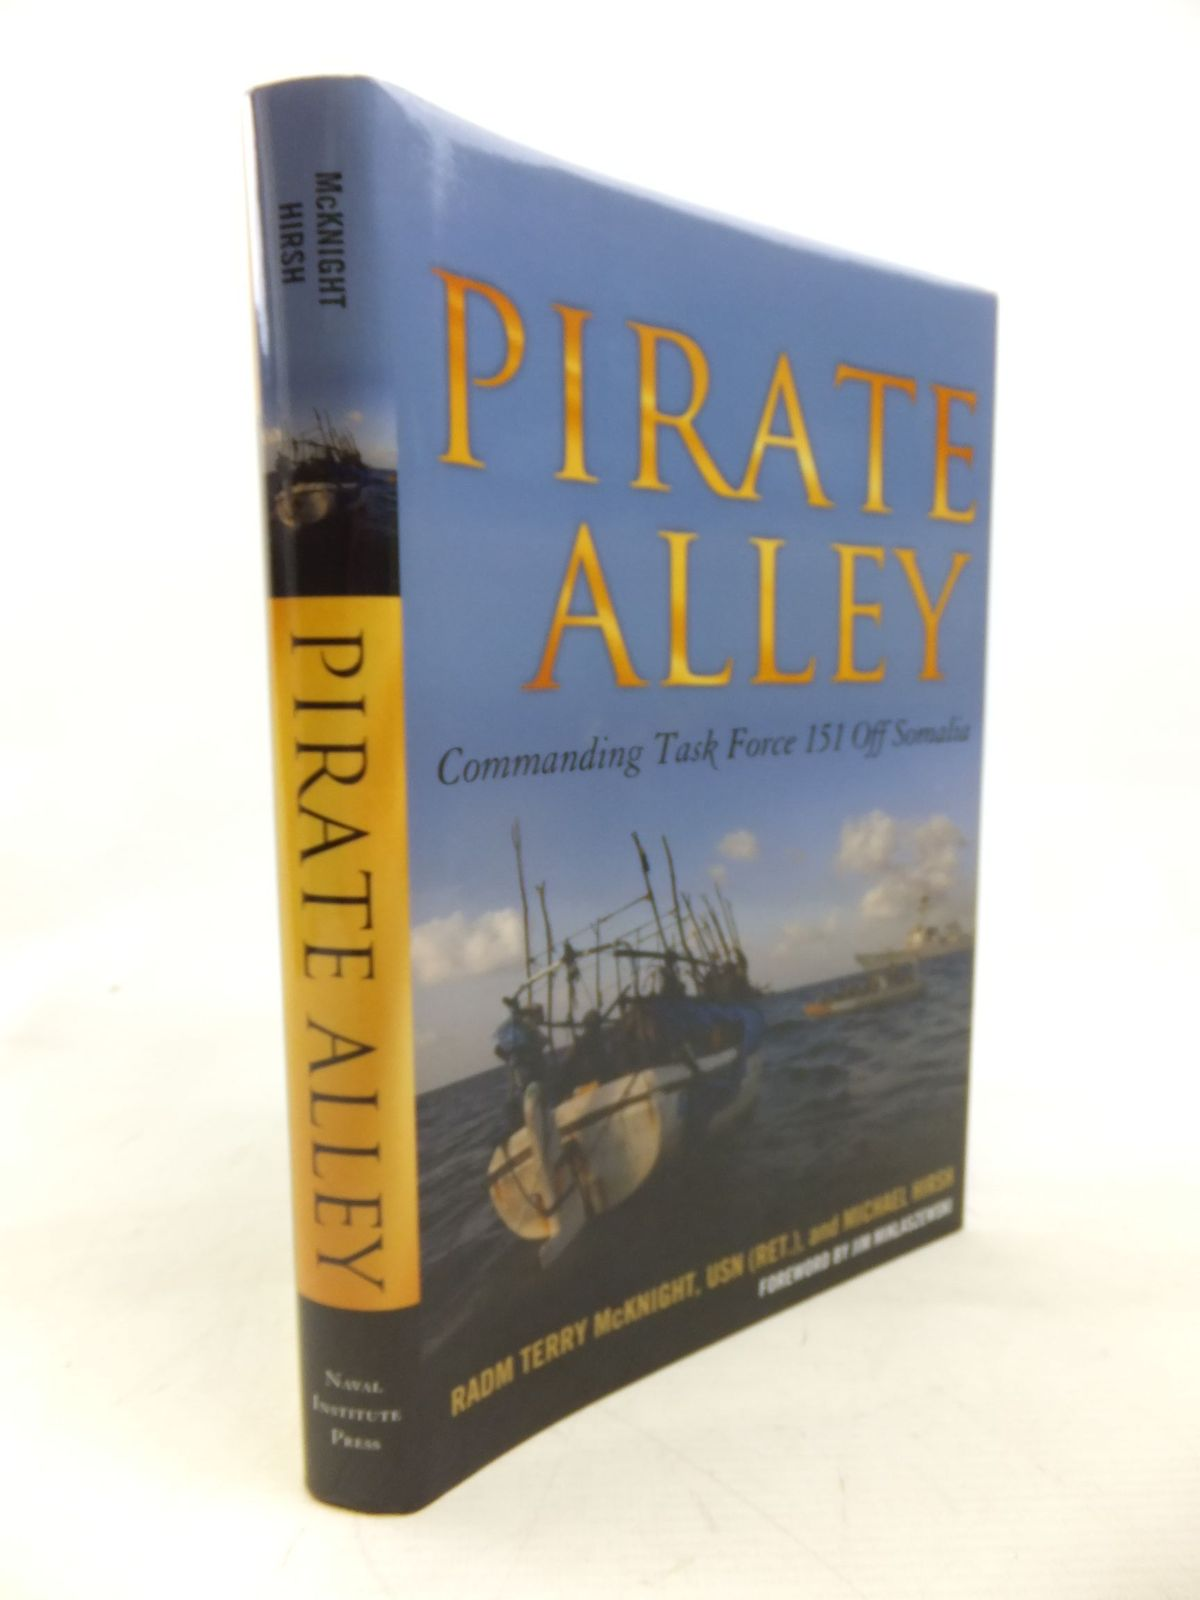 Photo of PIRATE ALLEY COMMANDING TASK FORCE 151 OFF SOMALIA- Stock Number: 2116150